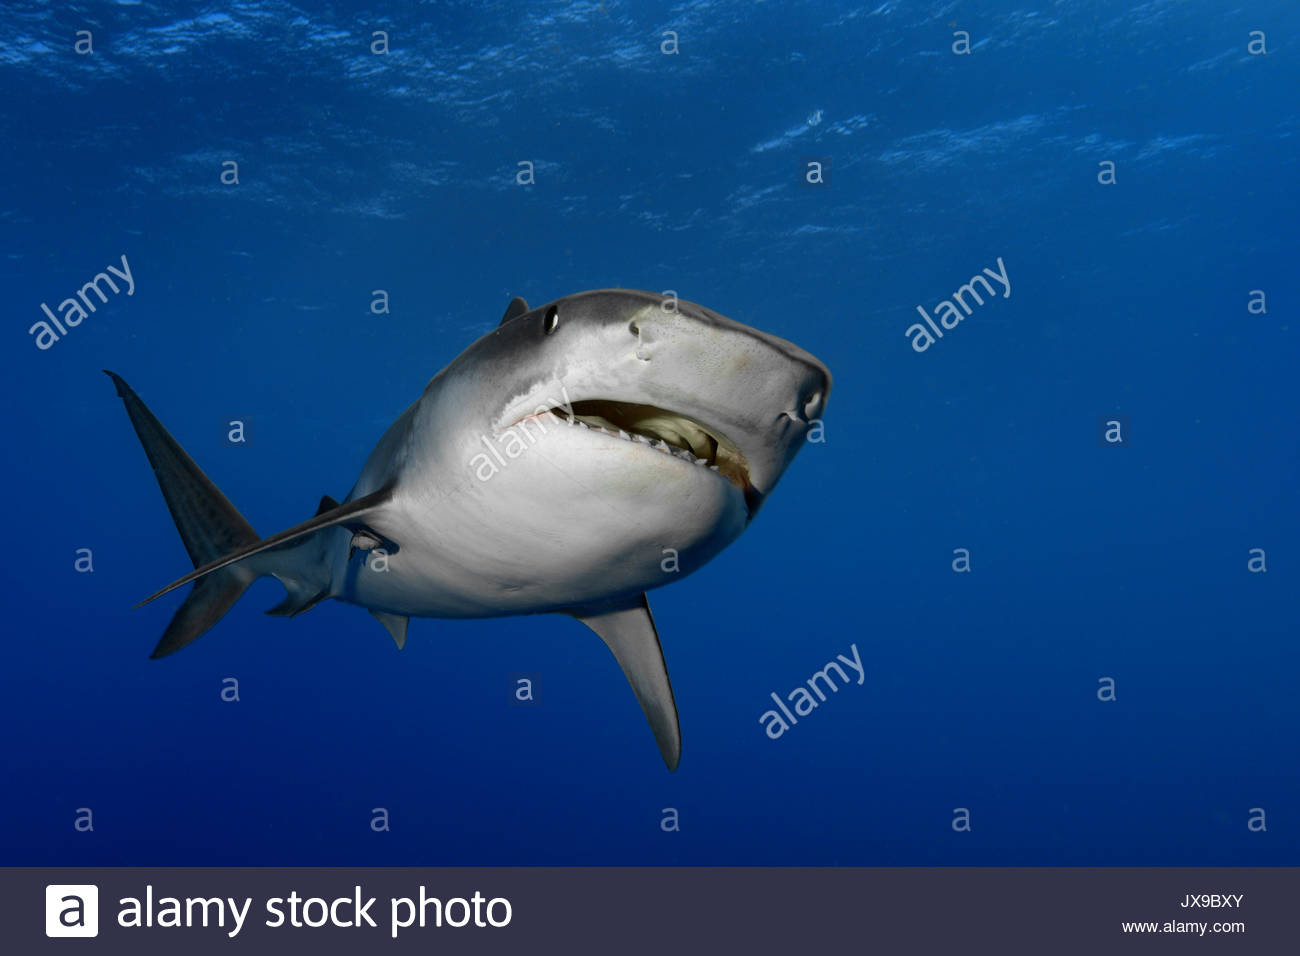 A tiger shark swims in waters off the coast of South Africa. Stock Photo